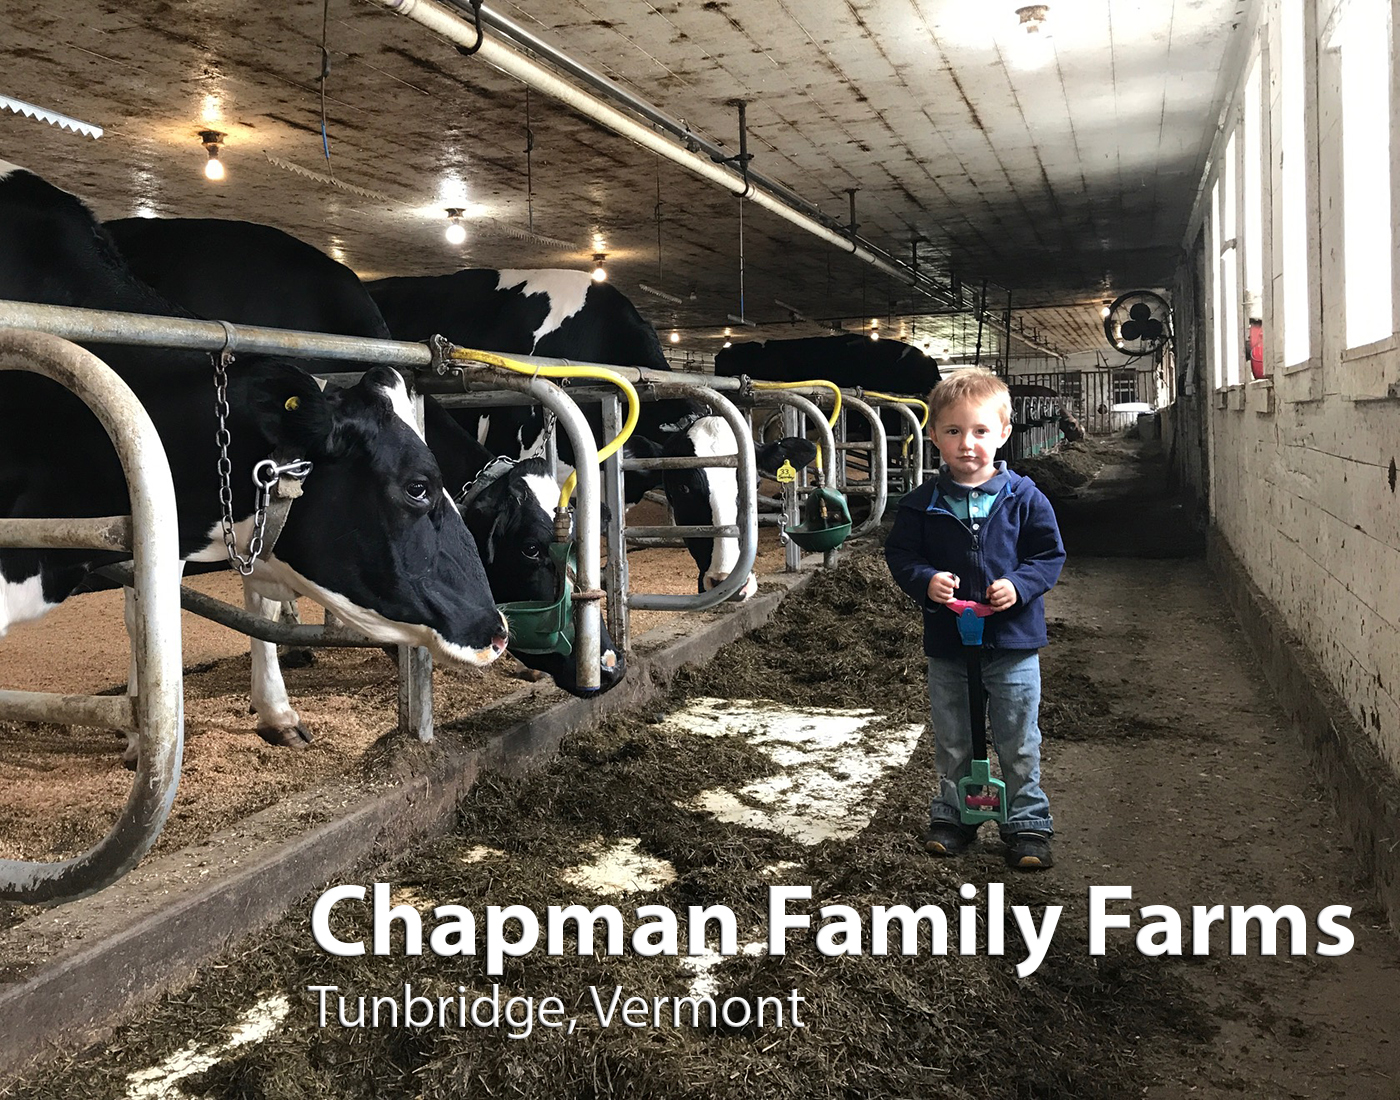 Chapman Family Farms